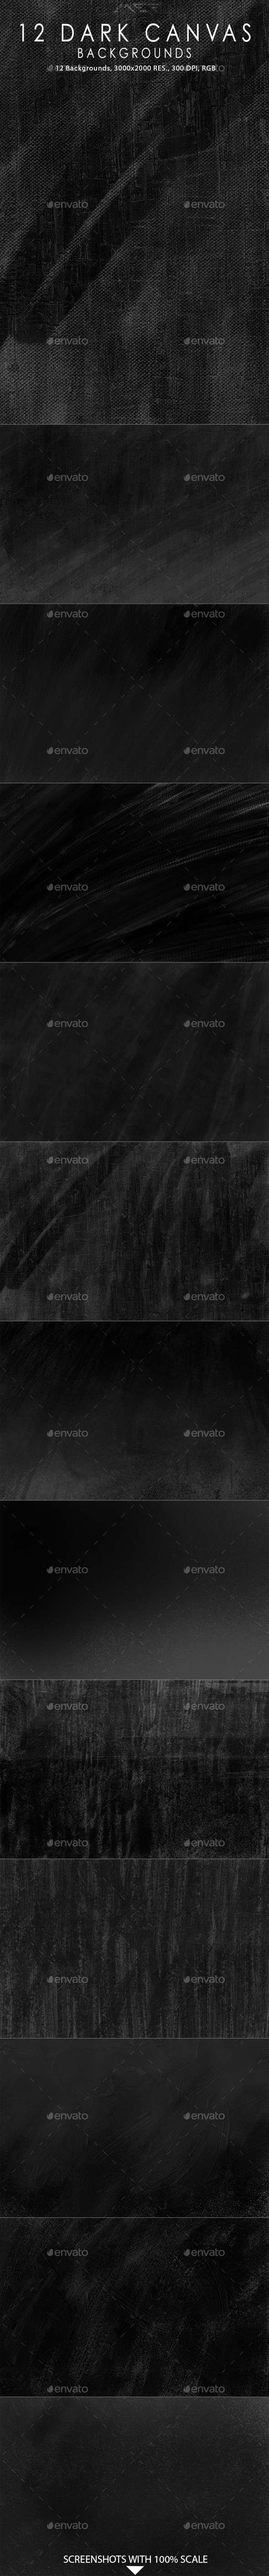 12 Dark Canvas Backgrounds - Abstract Backgrounds